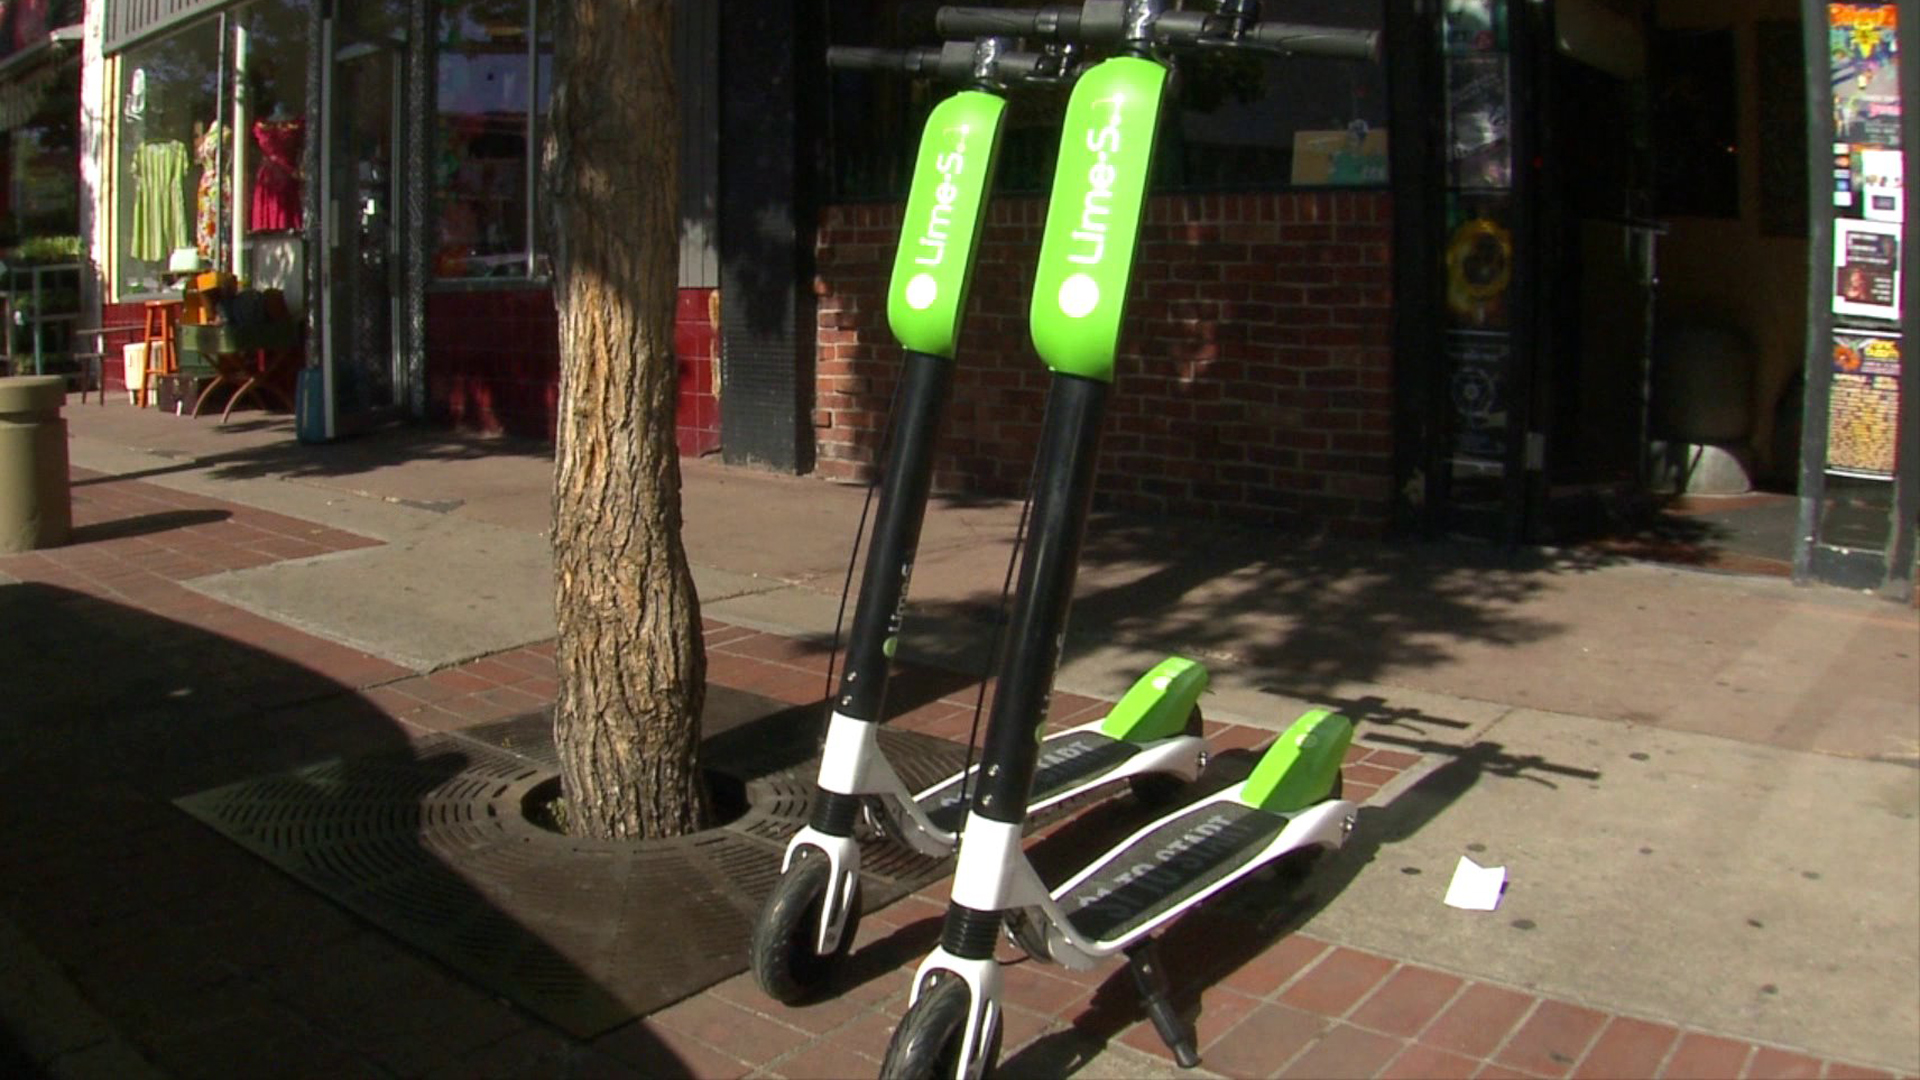 Lime scooters are seen in a file image. (Credit: KTLA)